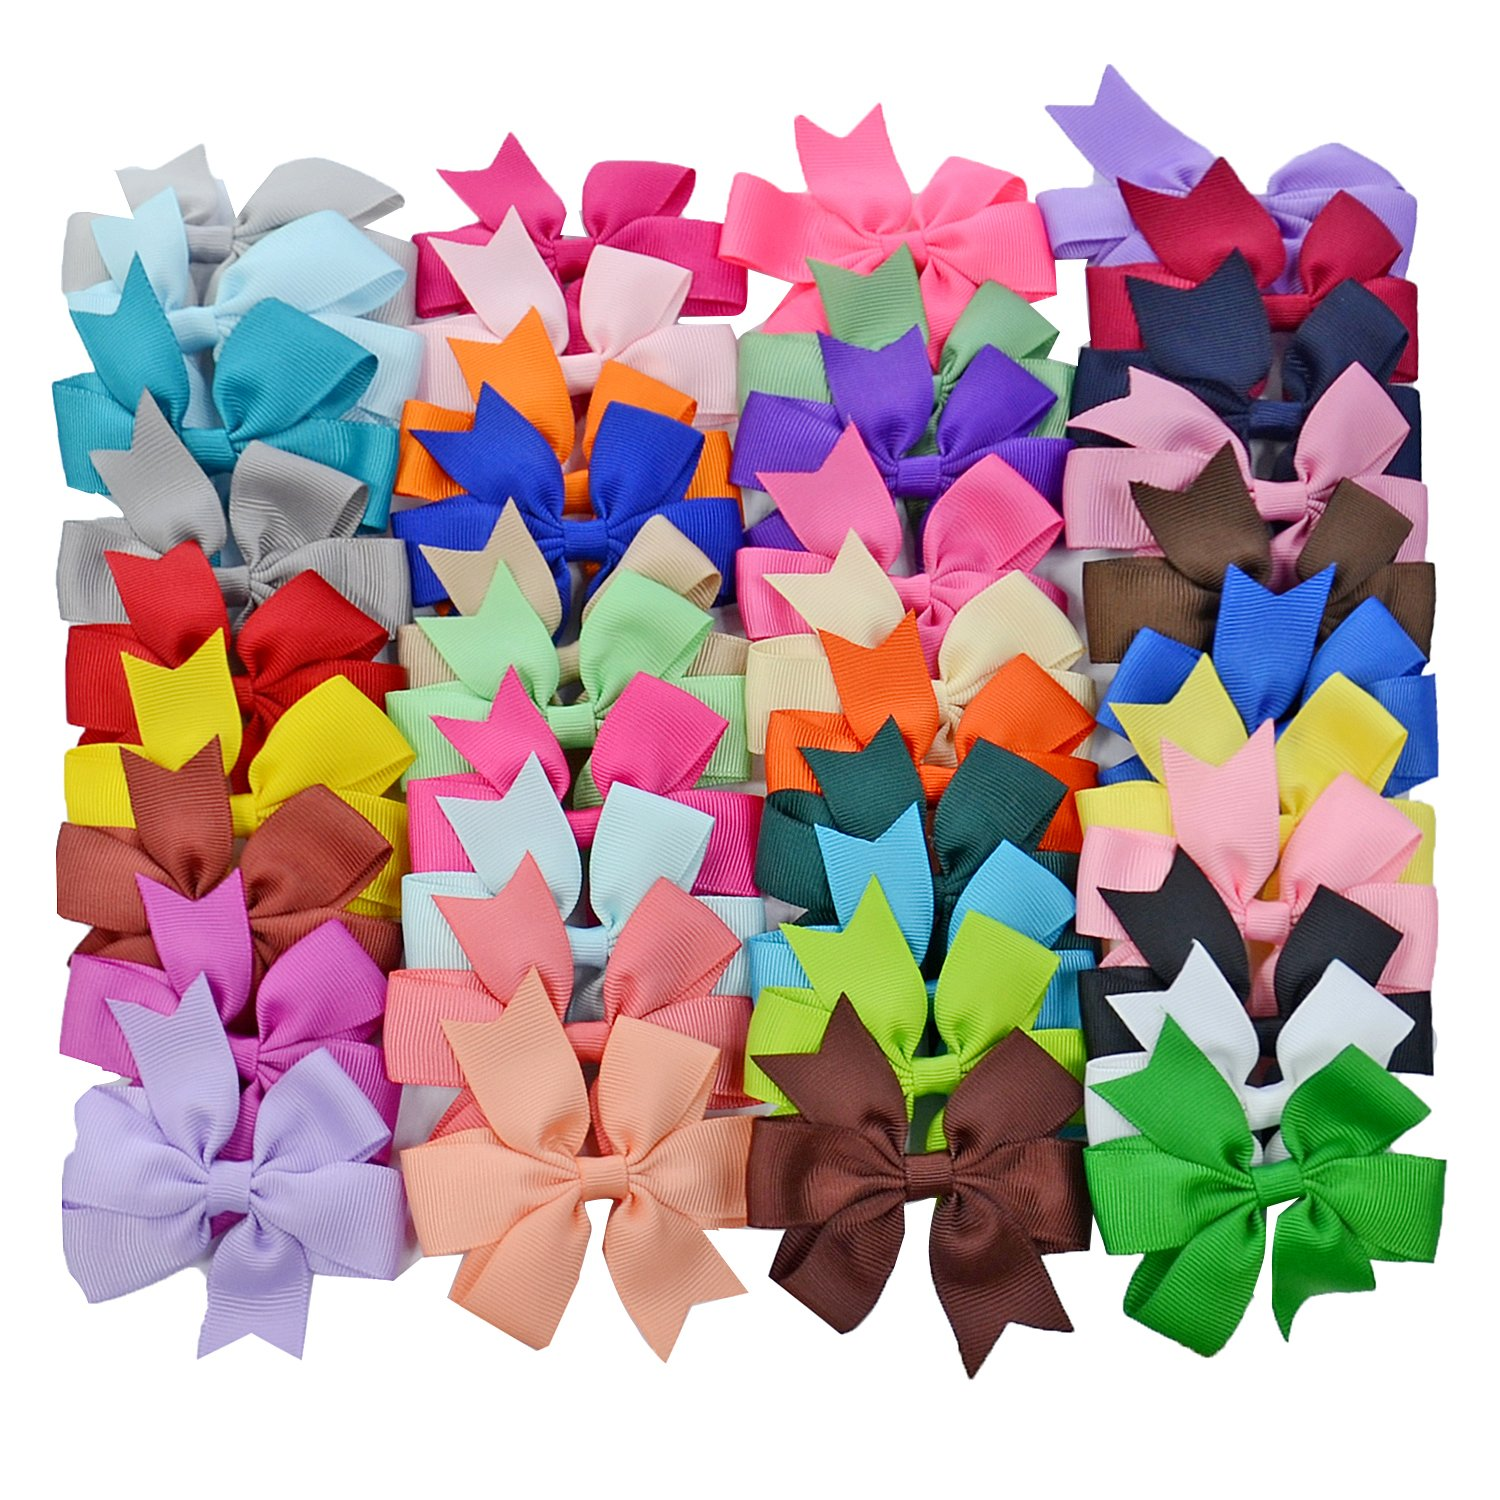 40PCS Boutique Barrette Hair Bows for Teens Babies Girls (3 Inch bow) by LCLHB